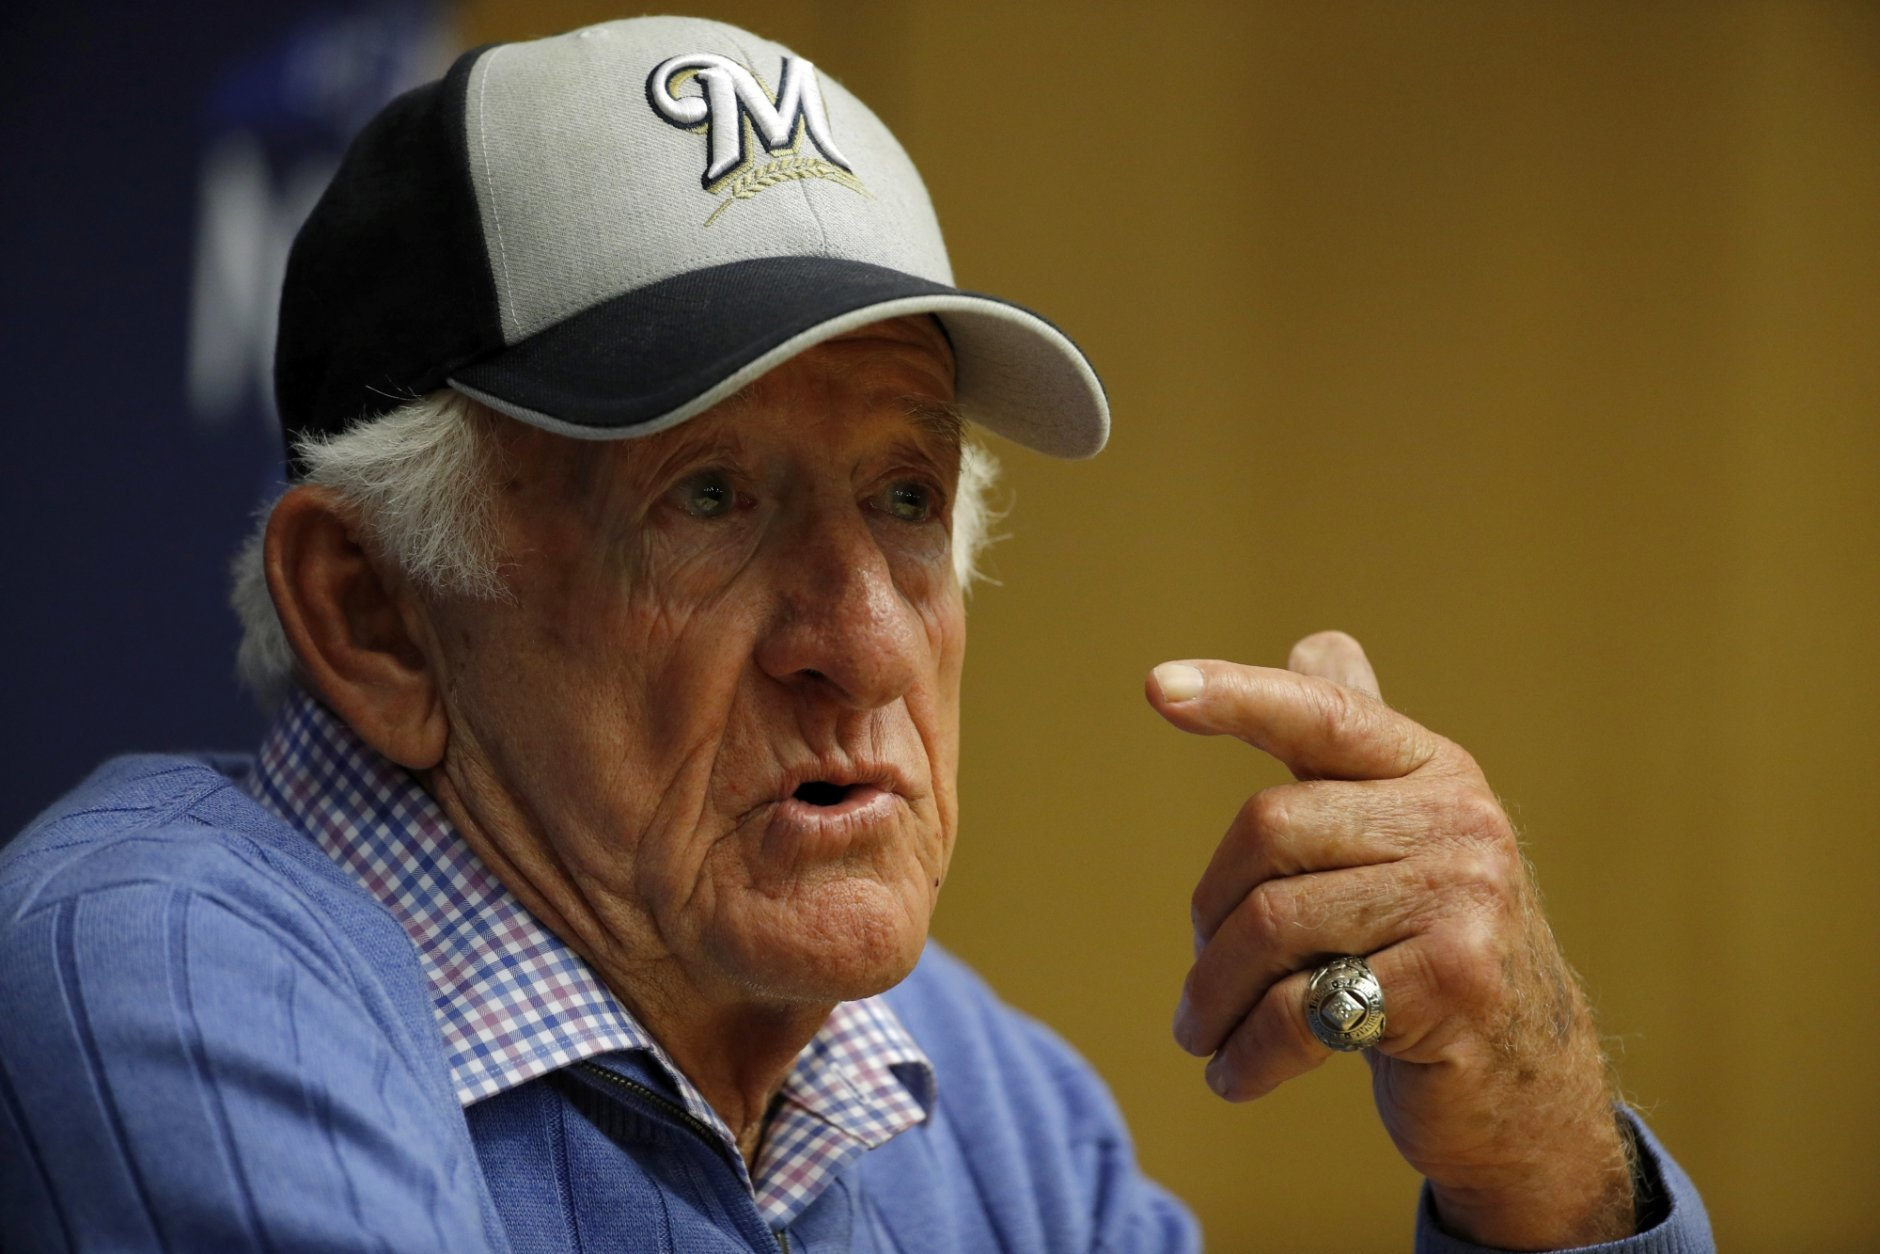 Milwaukee Brewers sportscaster Bob Uecker speaks at a news conference before Game 1 of the National League Championship Series baseball game between the Milwaukee Brewers and the Los Angeles Dodgers Friday, Oct. 12, 2018, in Milwaukee. (AP Photo/Charlie Riedel)